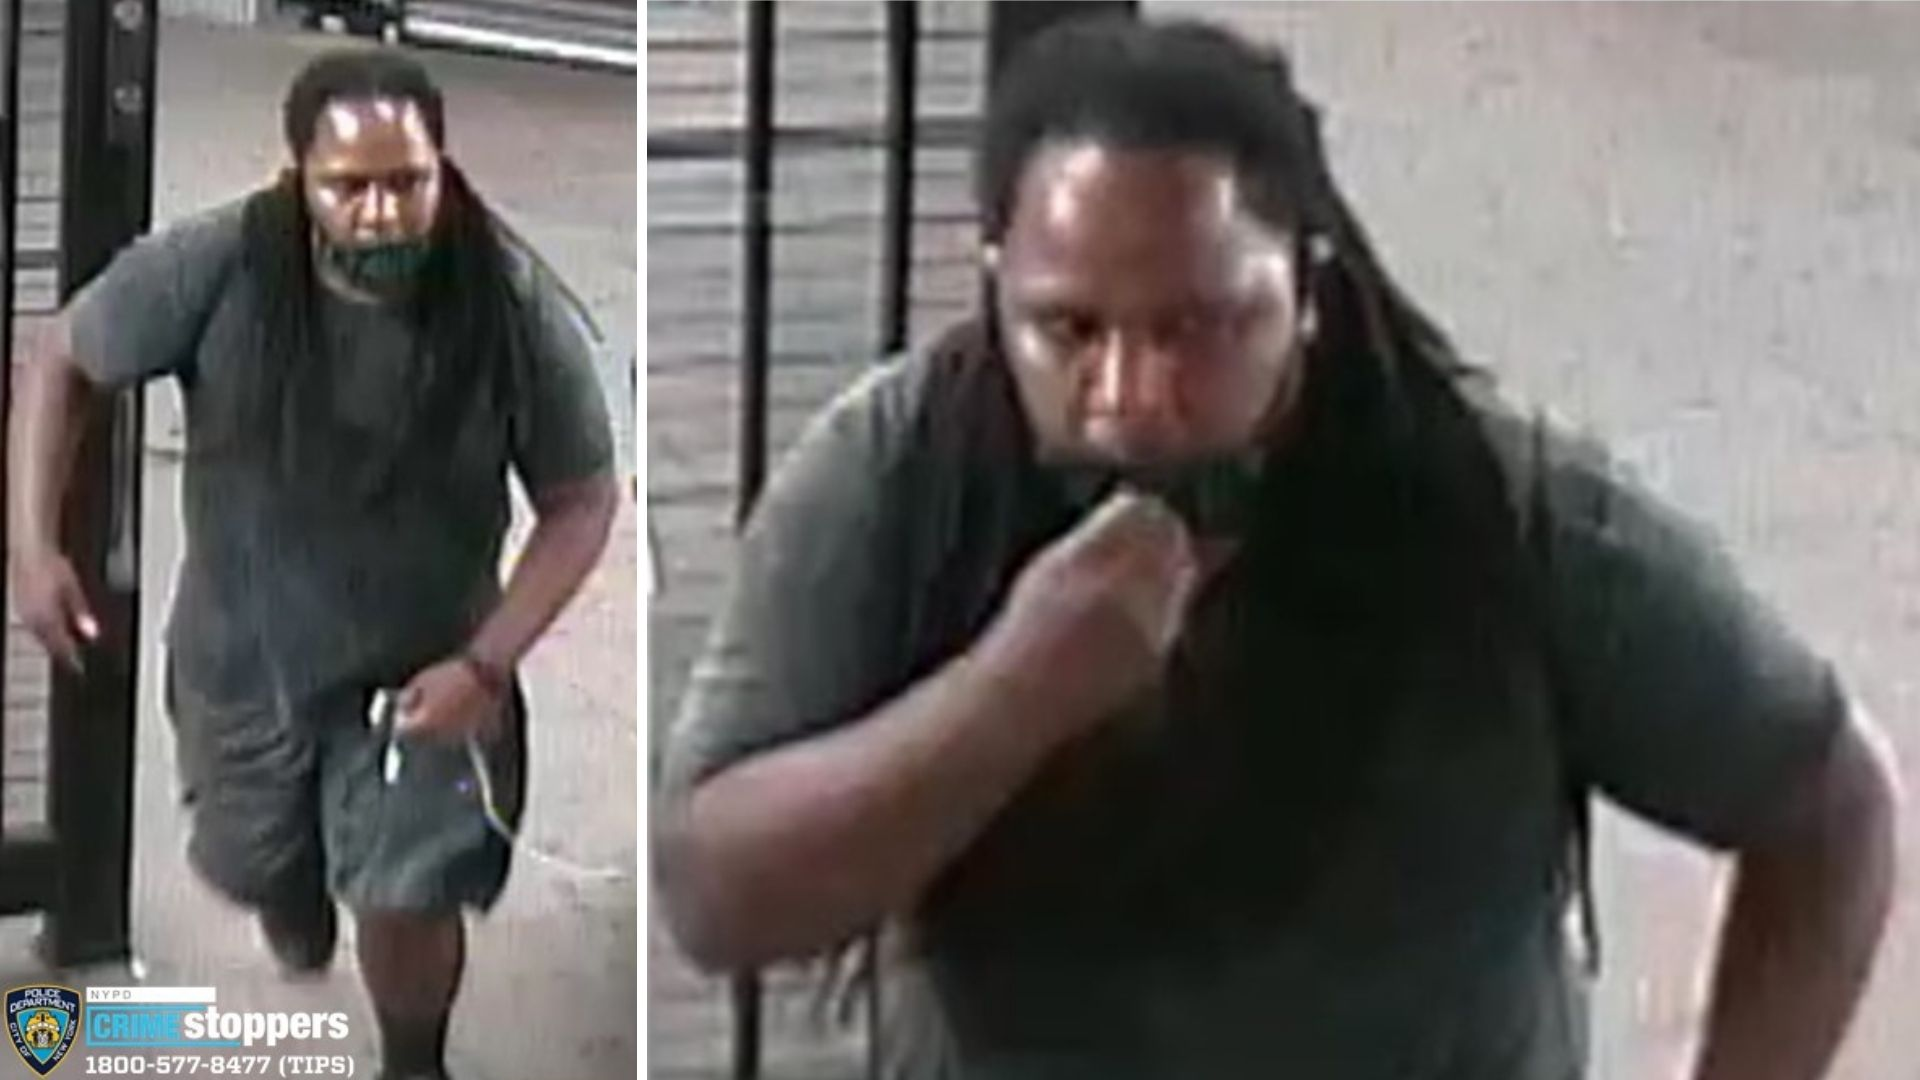 Man wanted in connection with an attempted rape on a Washington Heights subway